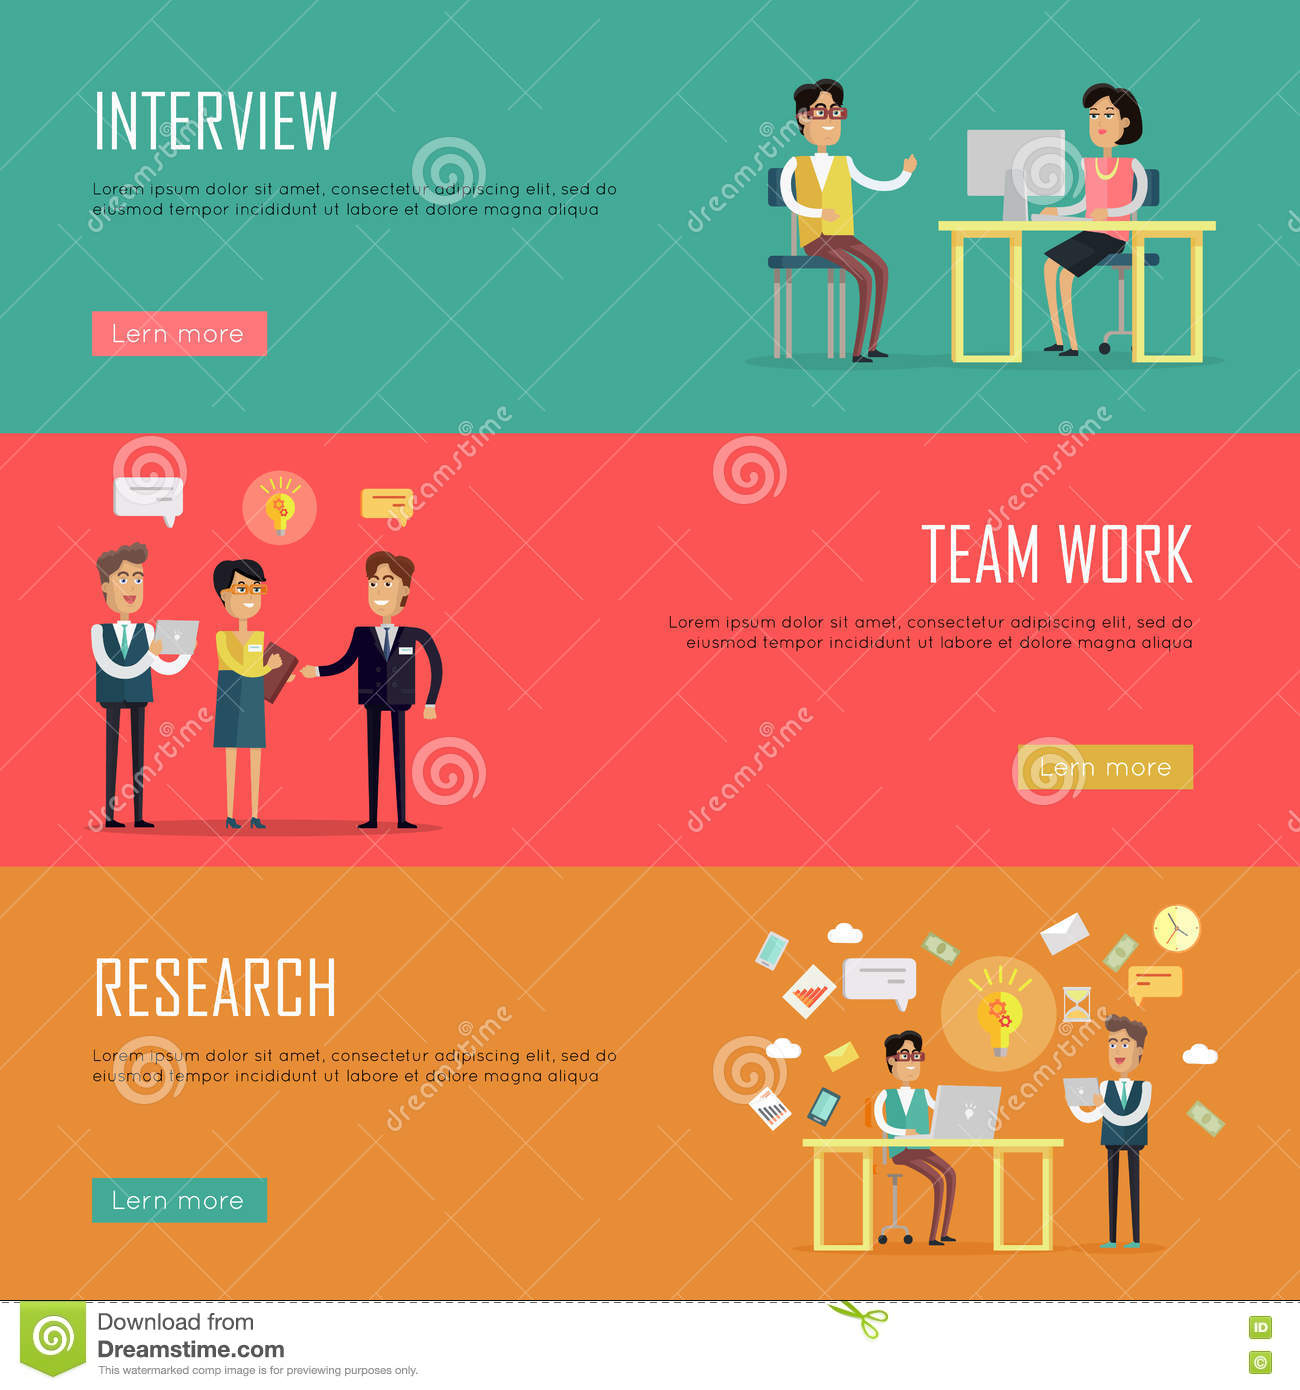 social teamwork concept website design template stock vector social teamwork concept website design template